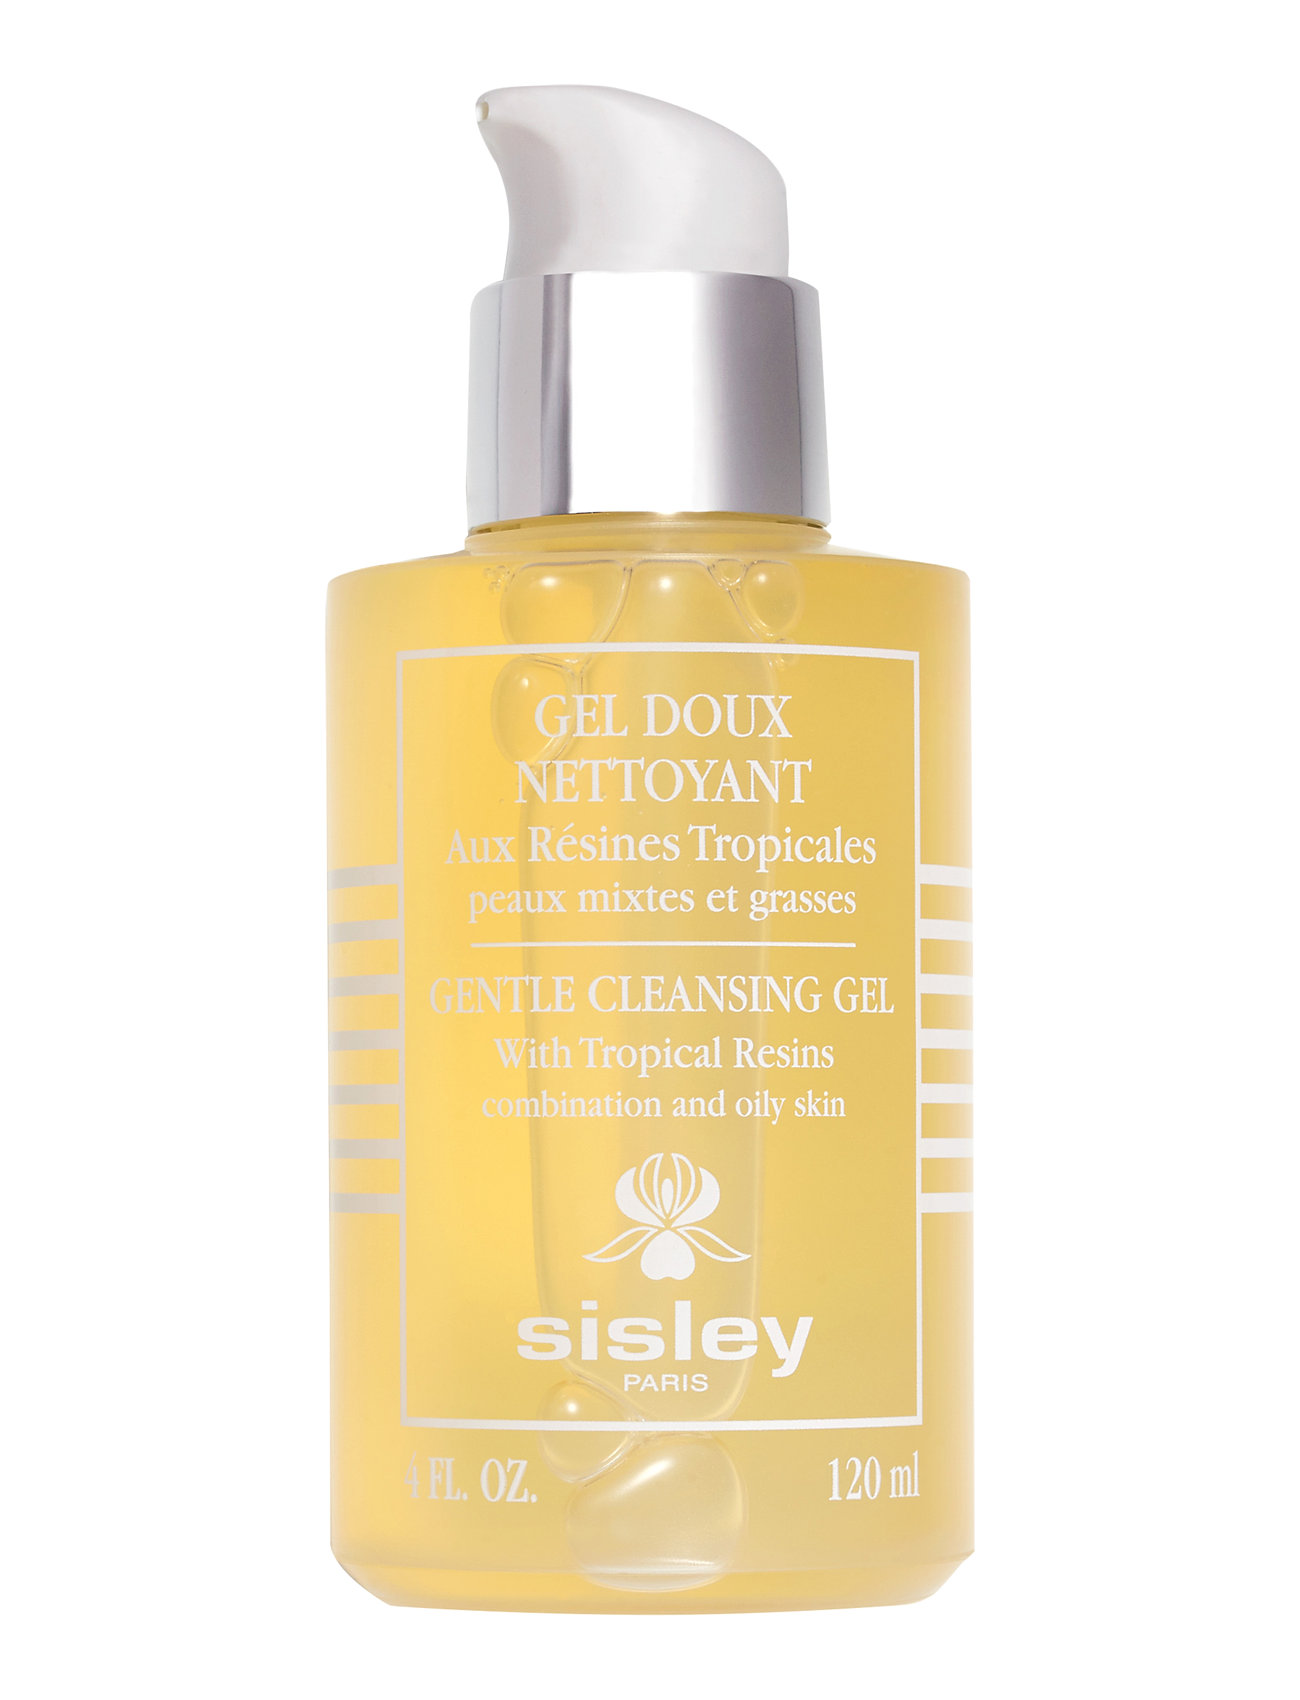 Image of Gentle Cleansing Gel With Tropical Resin Beauty WOMEN Skin Care Face Cleansers Cleansing Gel Nude Sisley (3101134879)